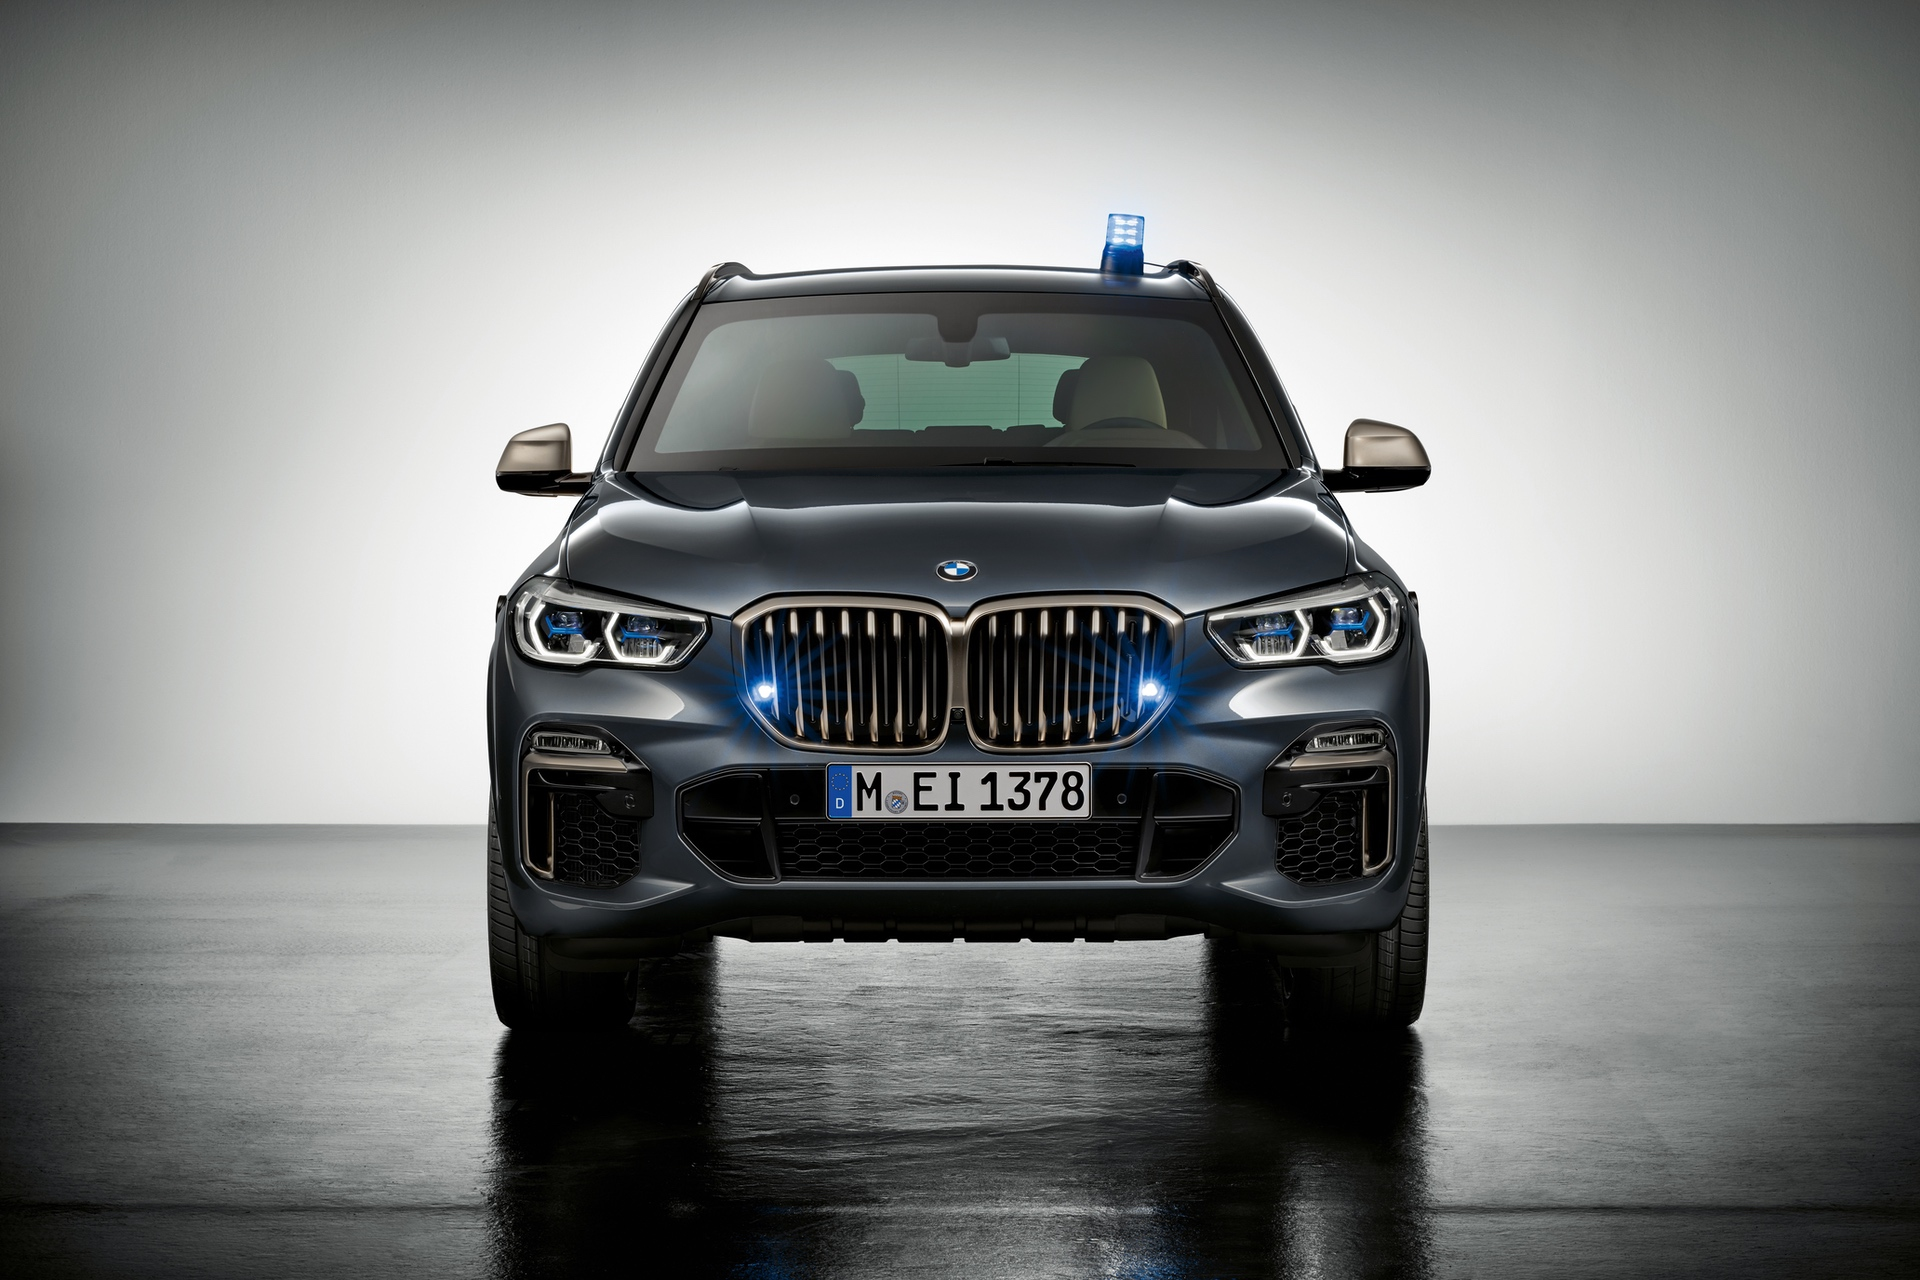 BMW X5 Protection VR6 armored 5